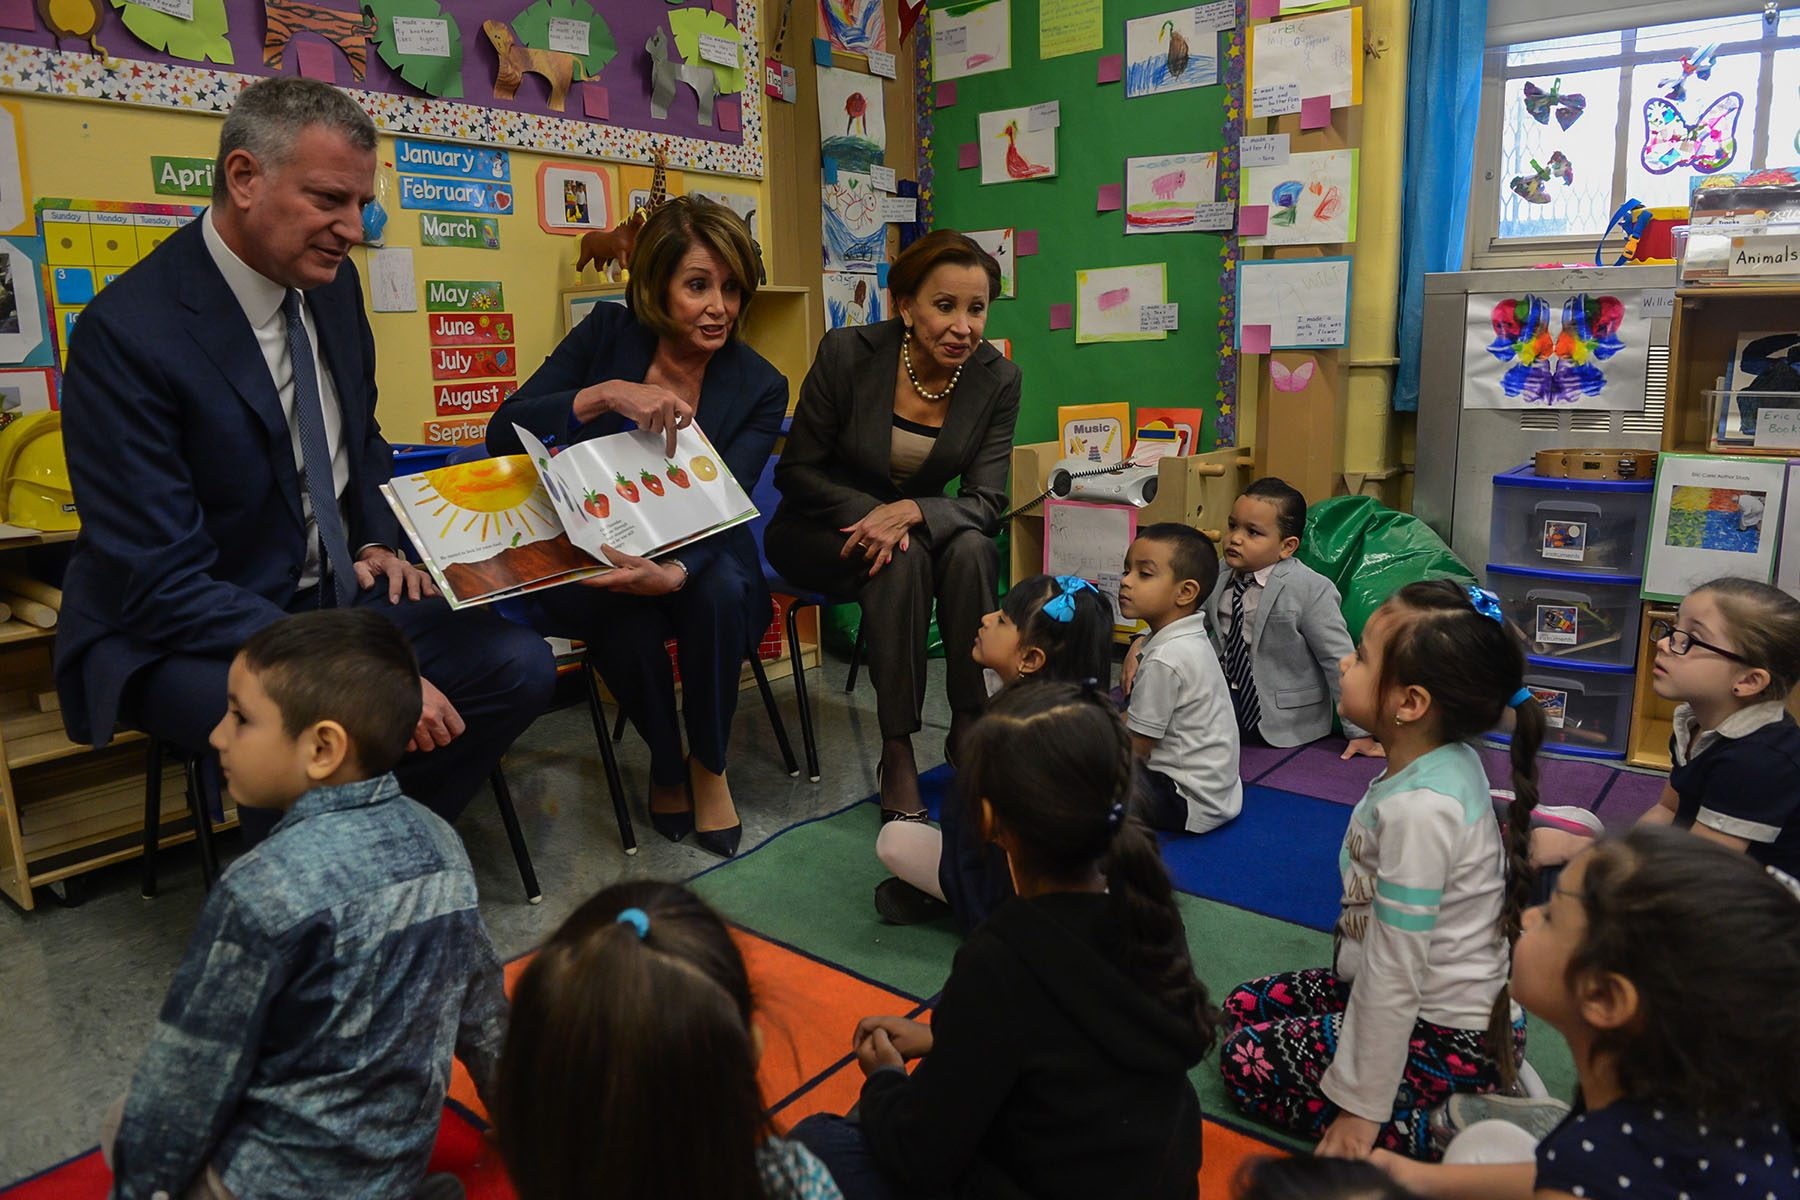 Nancy Pelosi, flanked by Bill DeBlasio and Nydia Velazquez points to a drawing of a strawberry in a children's book while children look on in a colorful classroom.